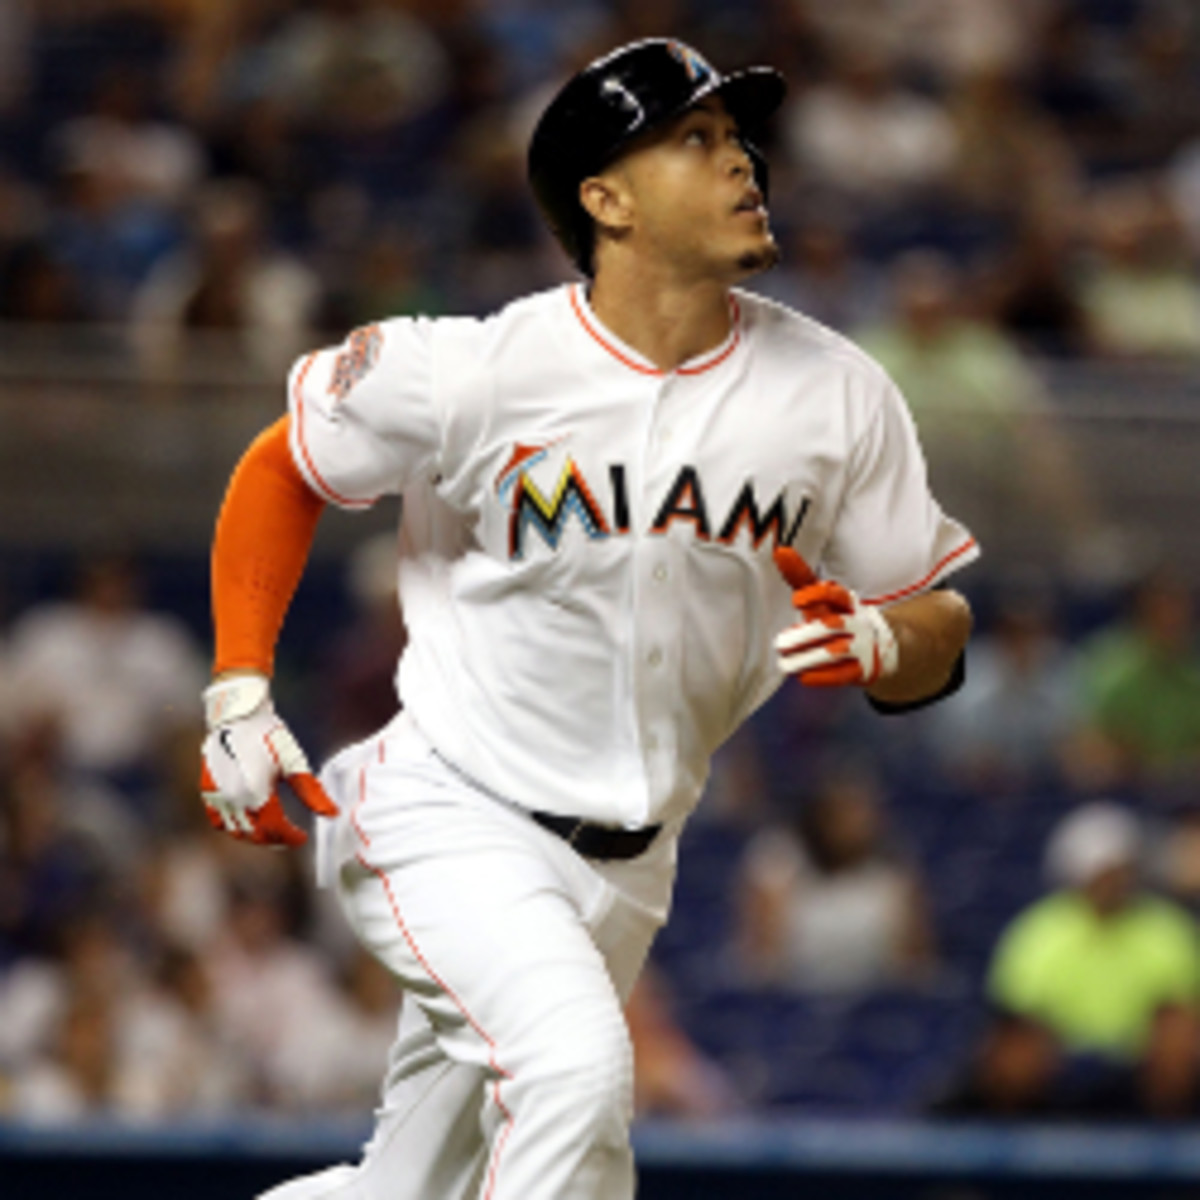 Marlins owner Jeffrey Loria said the team will not discuss a contract extension with slugger Giancarlo Stanton this season. (Marc Serota/Getty Images)